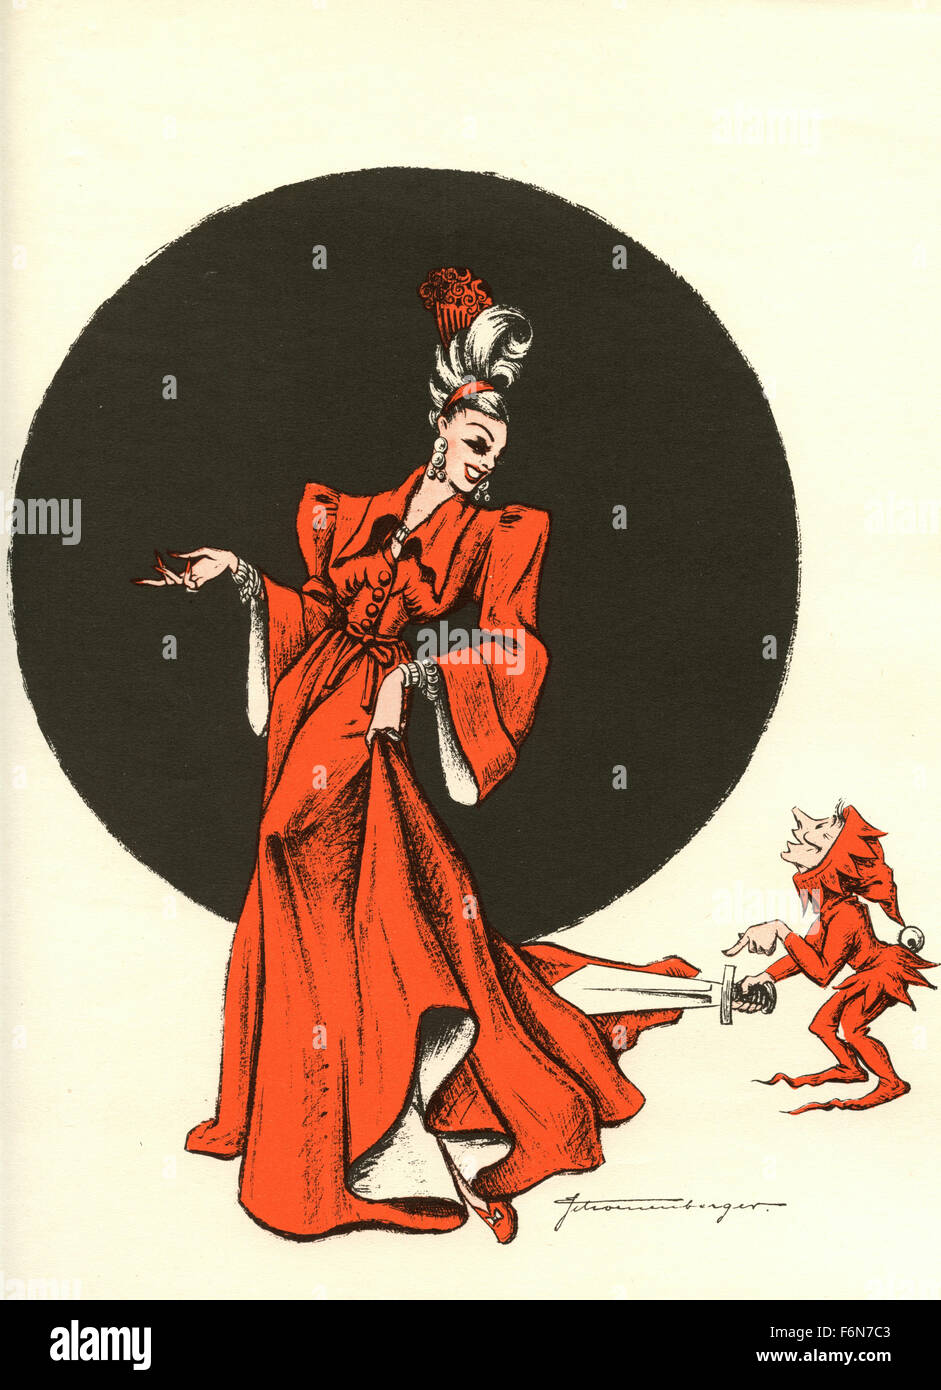 German satirical illustrations 1950: A woman and an elf - Stock Image